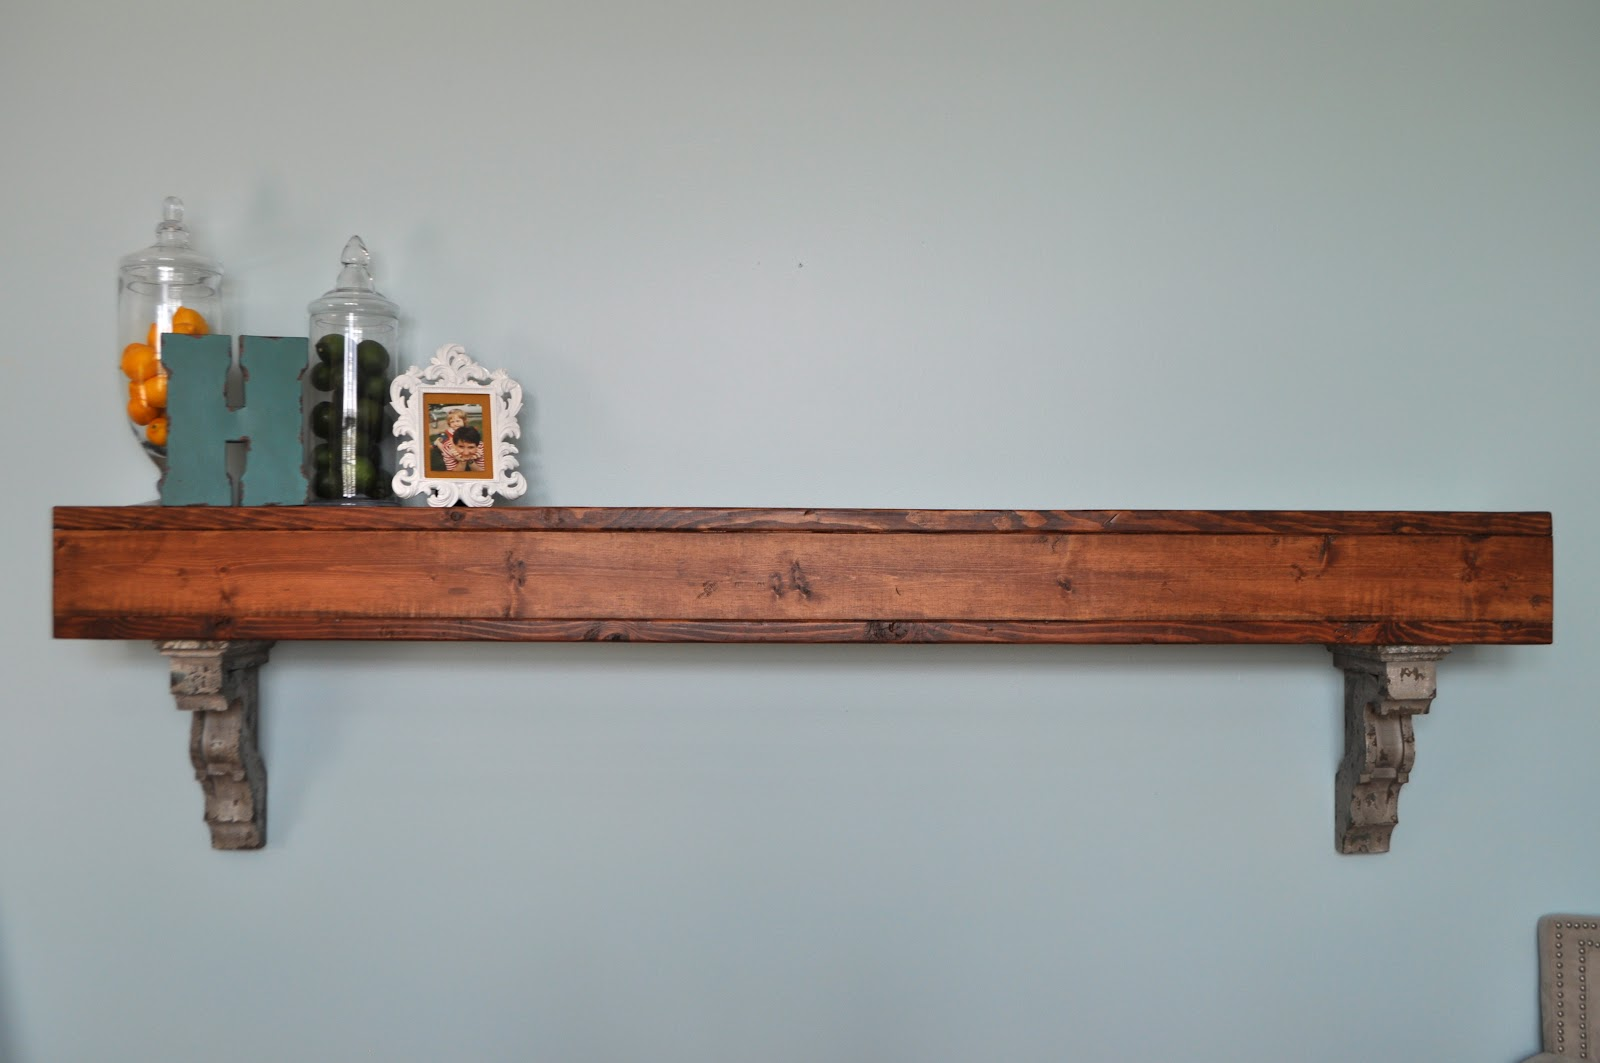 Dad built this living room shelf for Living room shelves